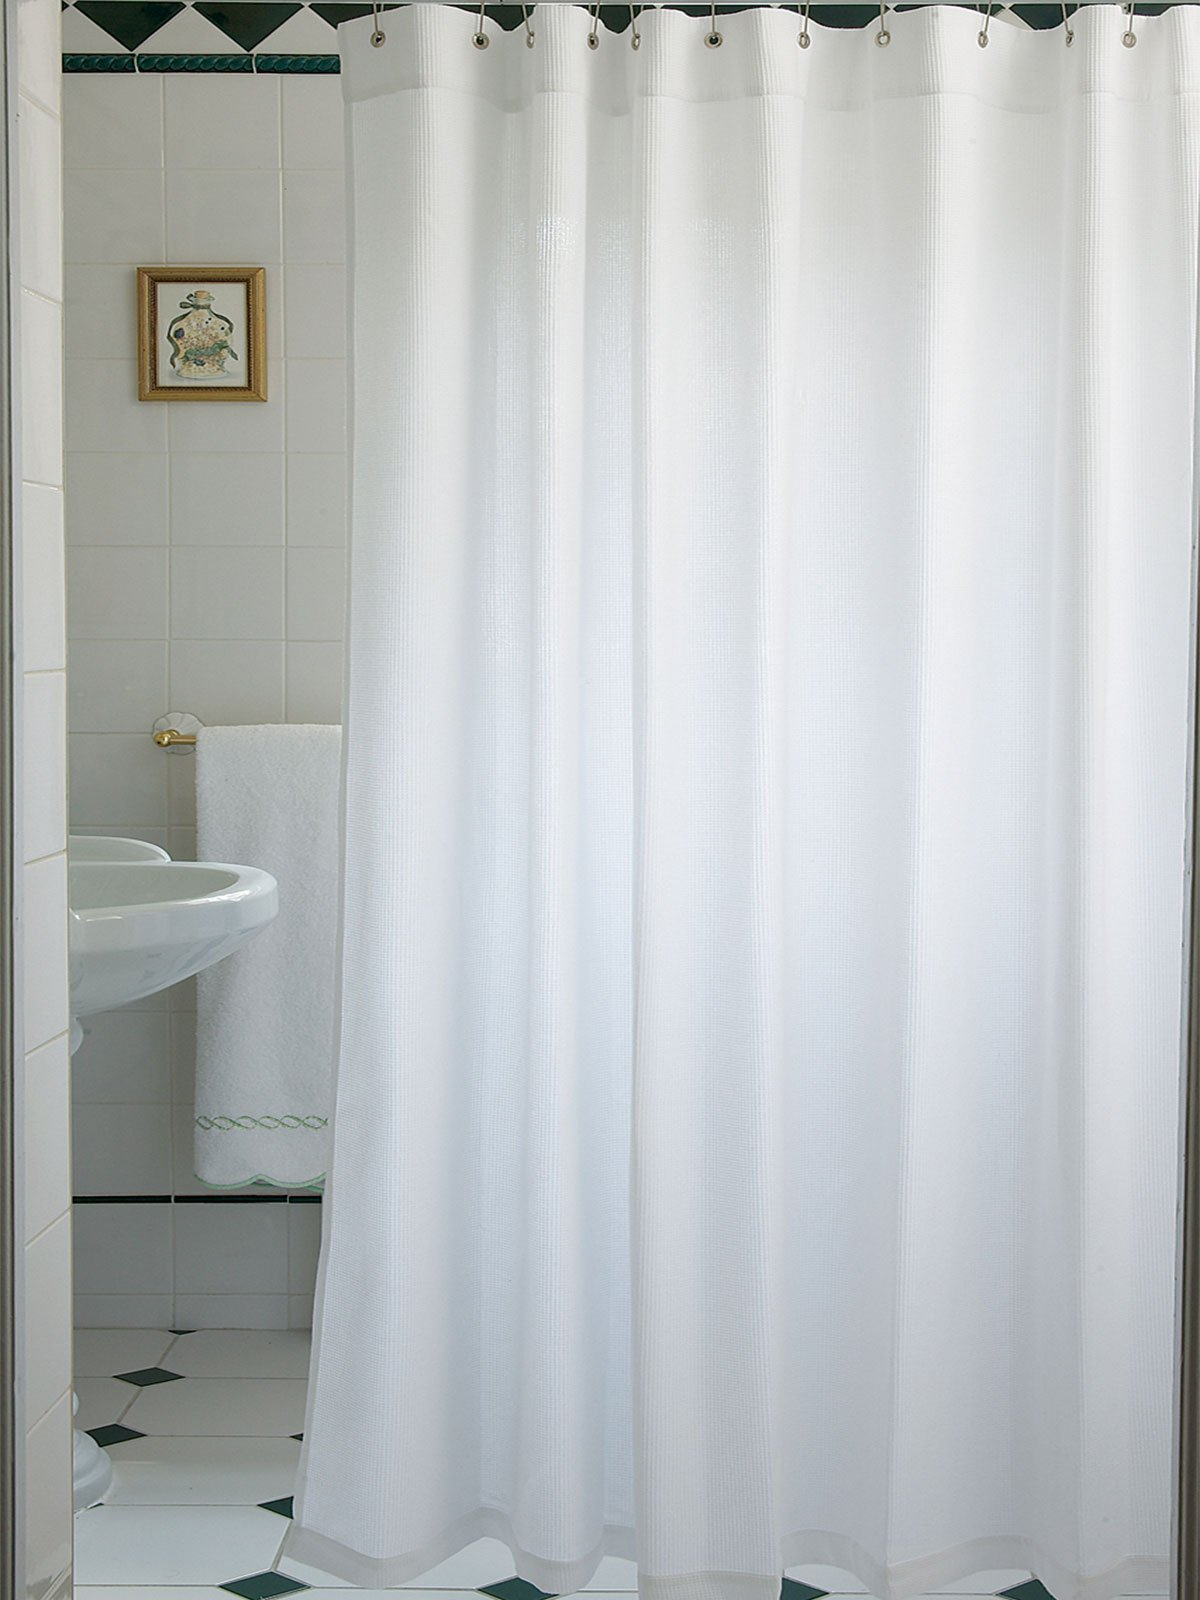 How To Make Curtain Valances White Beaded Shower Curtain